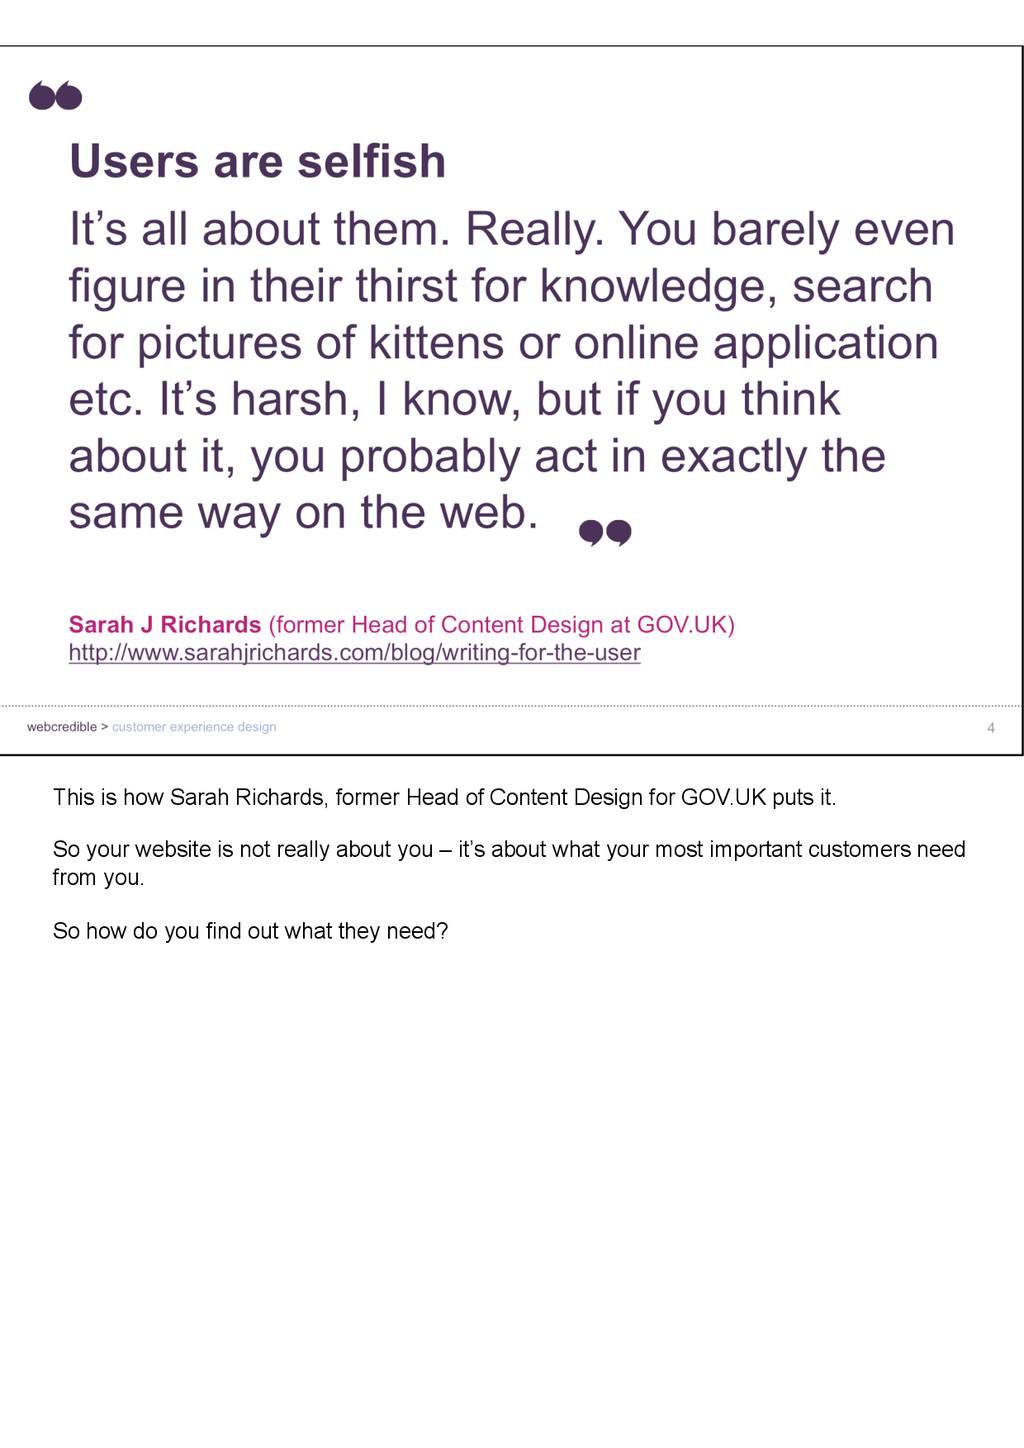 This is how Sarah Richards, former Head of Cont...